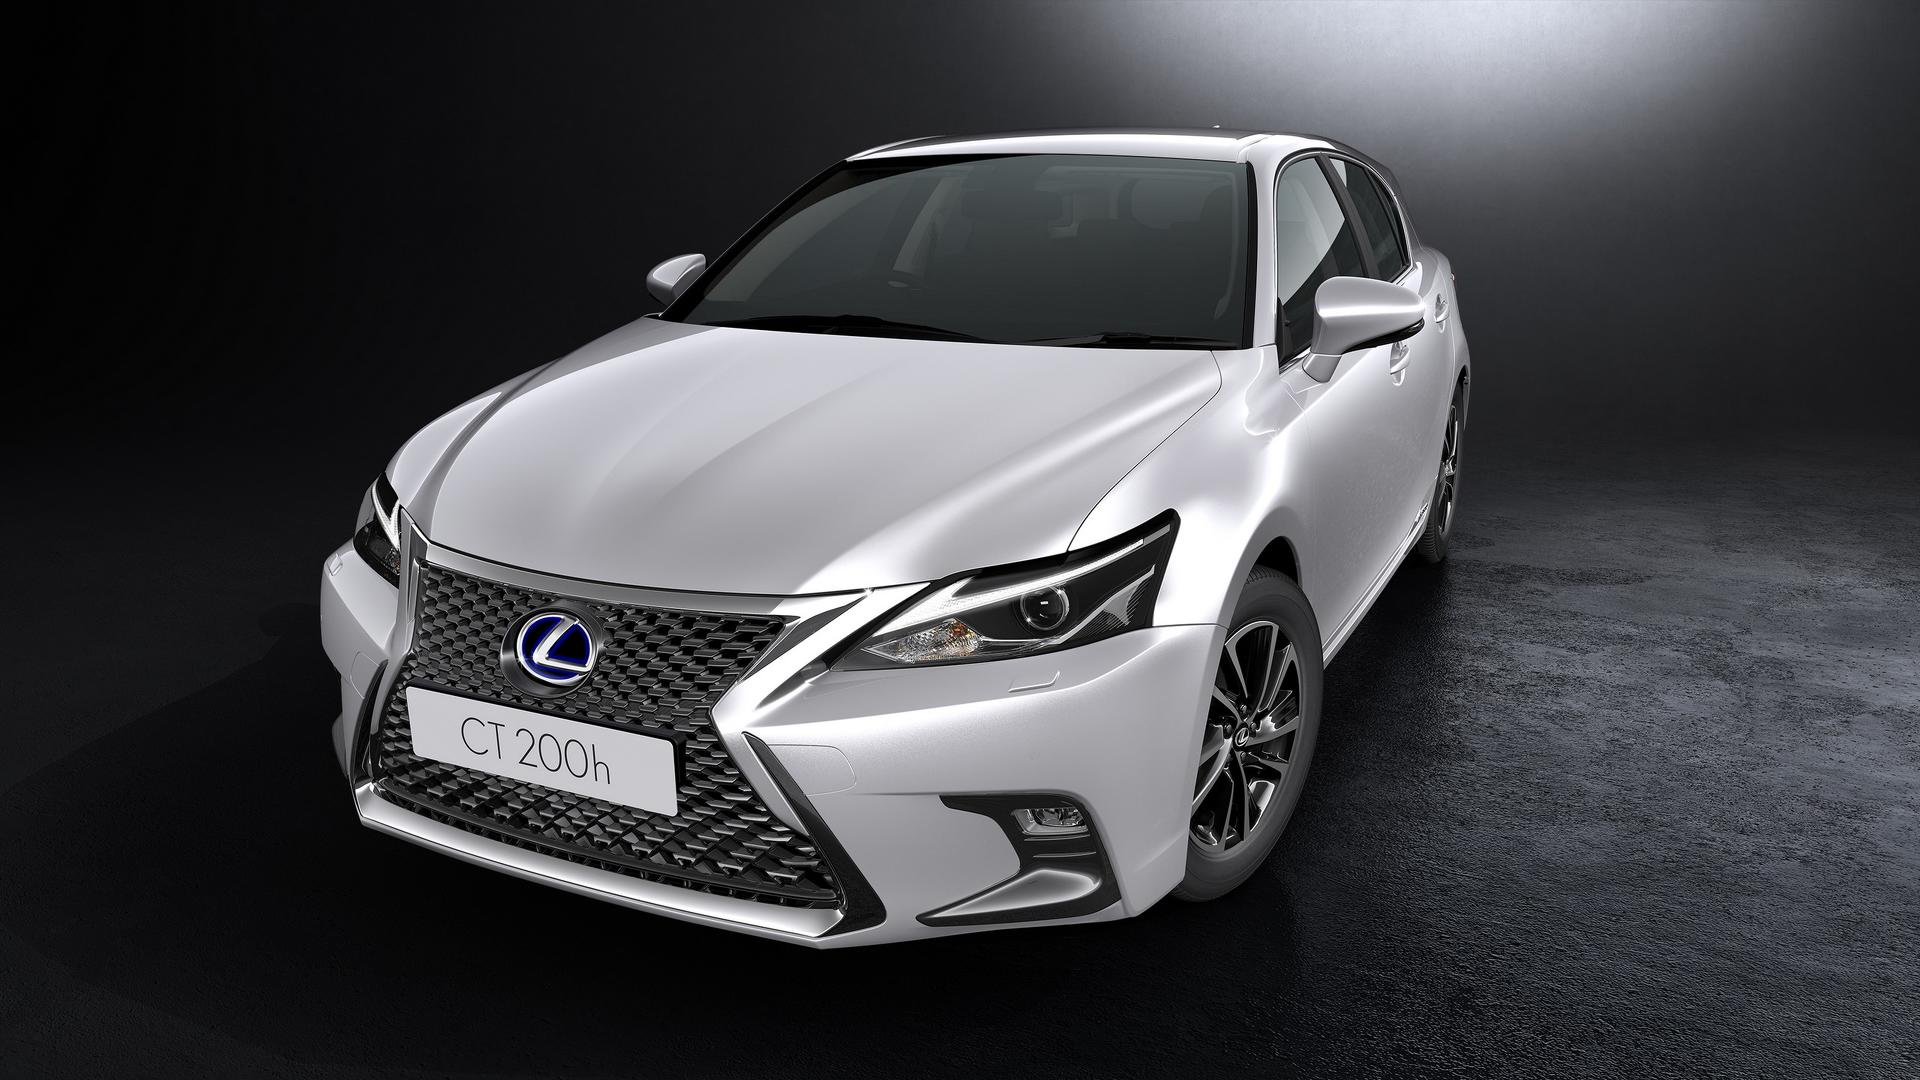 lexus navigation systems suffer glitch after update might